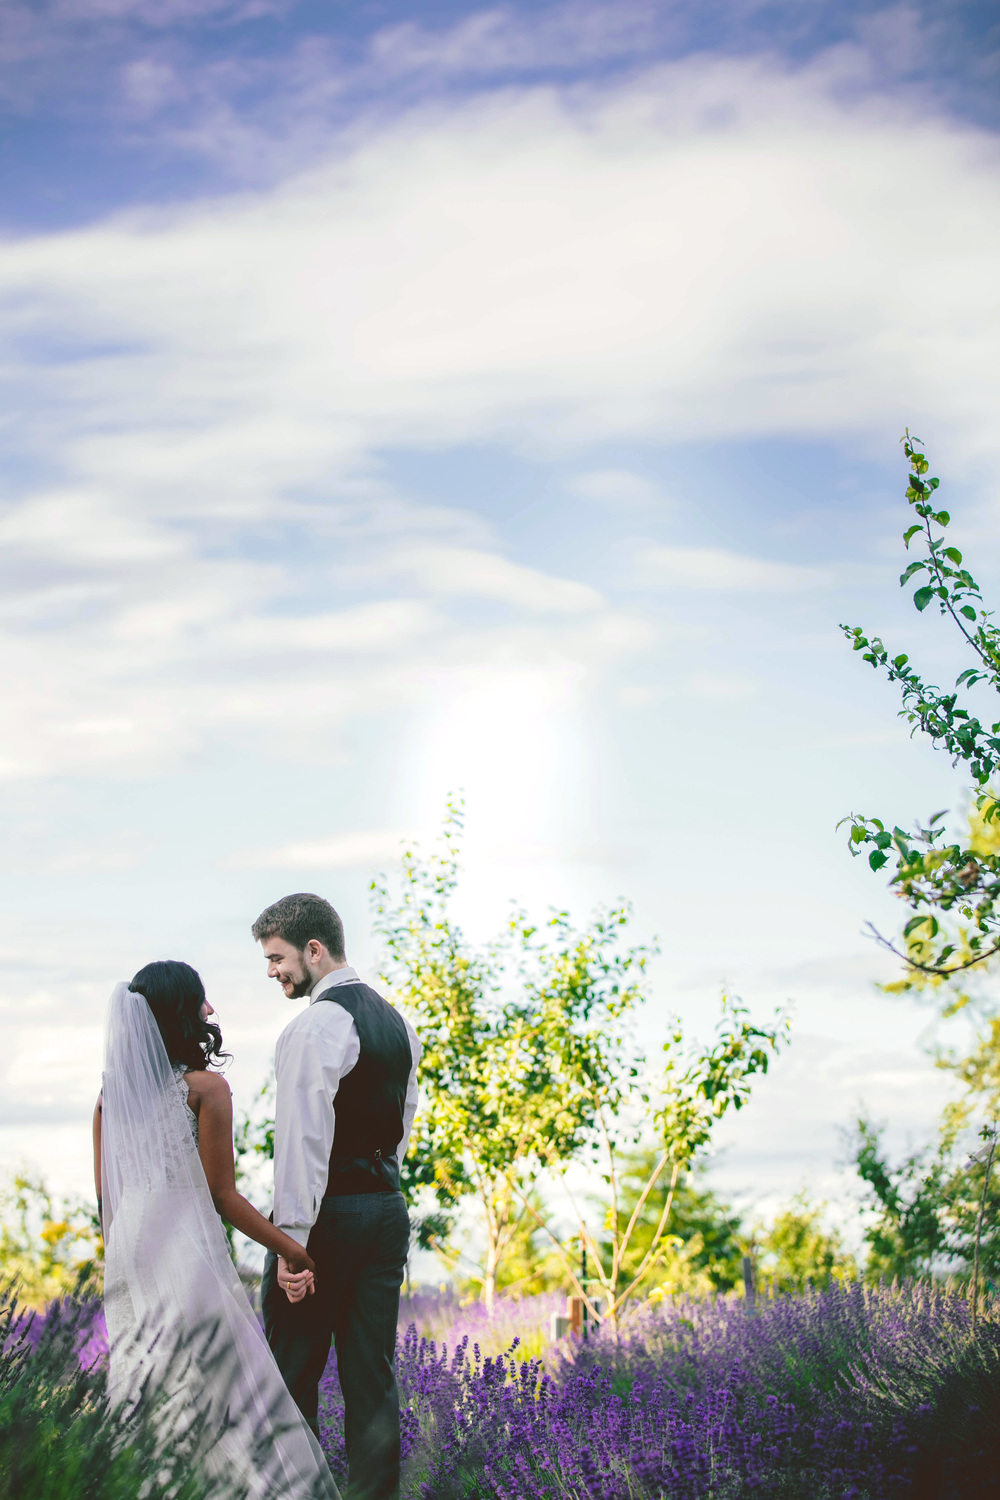 Hima+Dan_Wedding_Seattle+Couple_Kingston_6112016_5.jpg